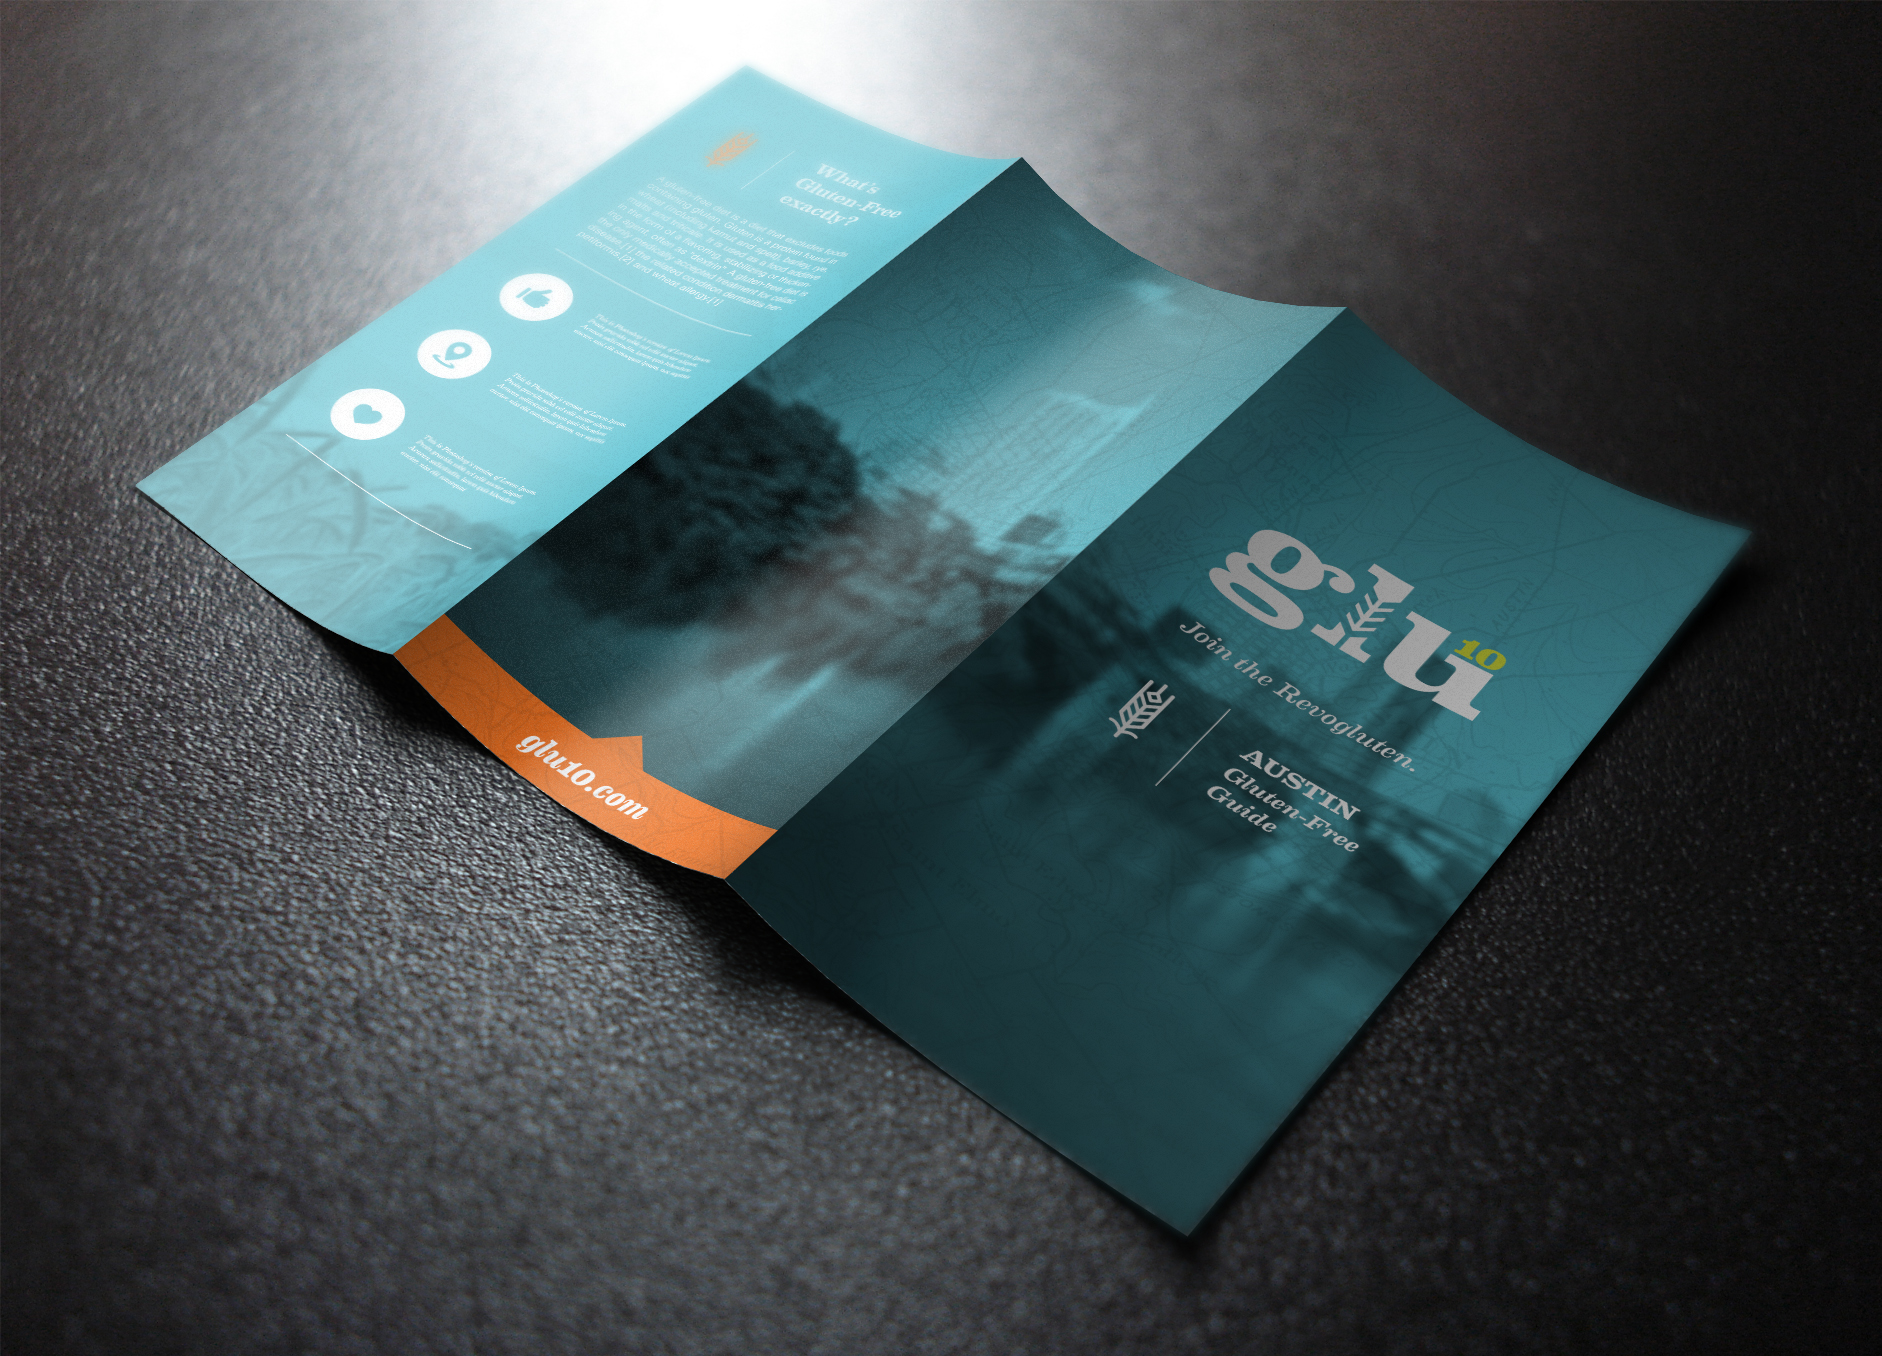 How to Design a Stunning Brochure  30 Expert Tips and Templates     Make the brochure worth keeping  Glu10 Trifold by Handsome